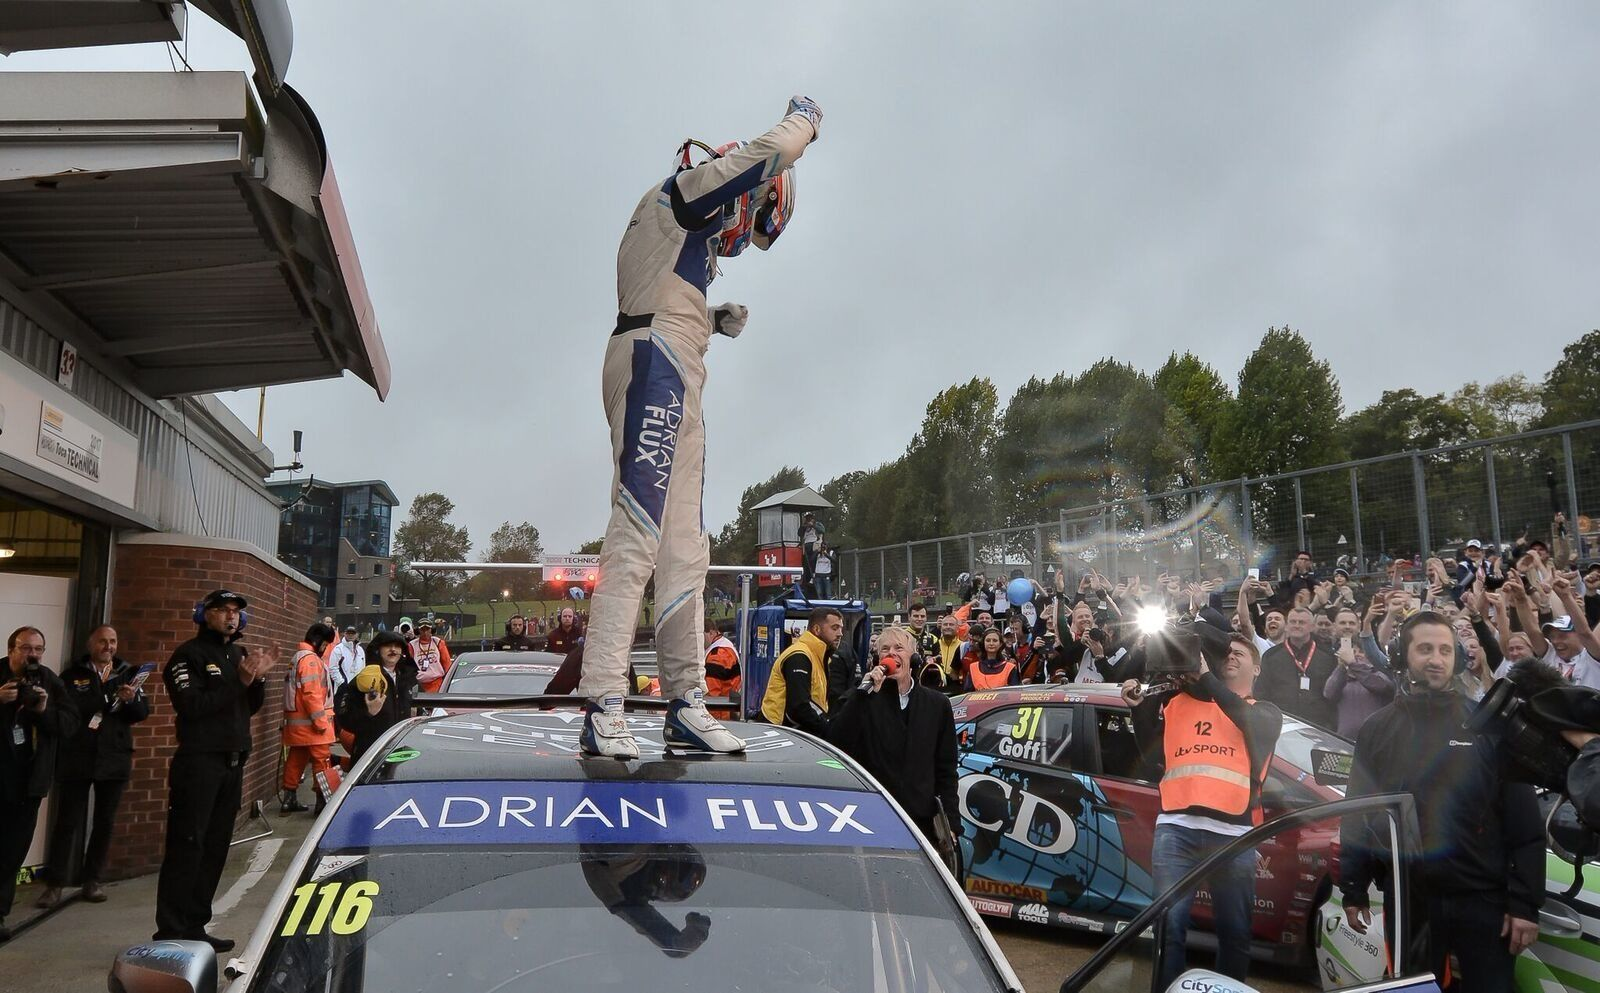 SUBARU STAR SUTTON SCOOPS BRITISH TOURING CAR CHAMPIONSHIP TITLE